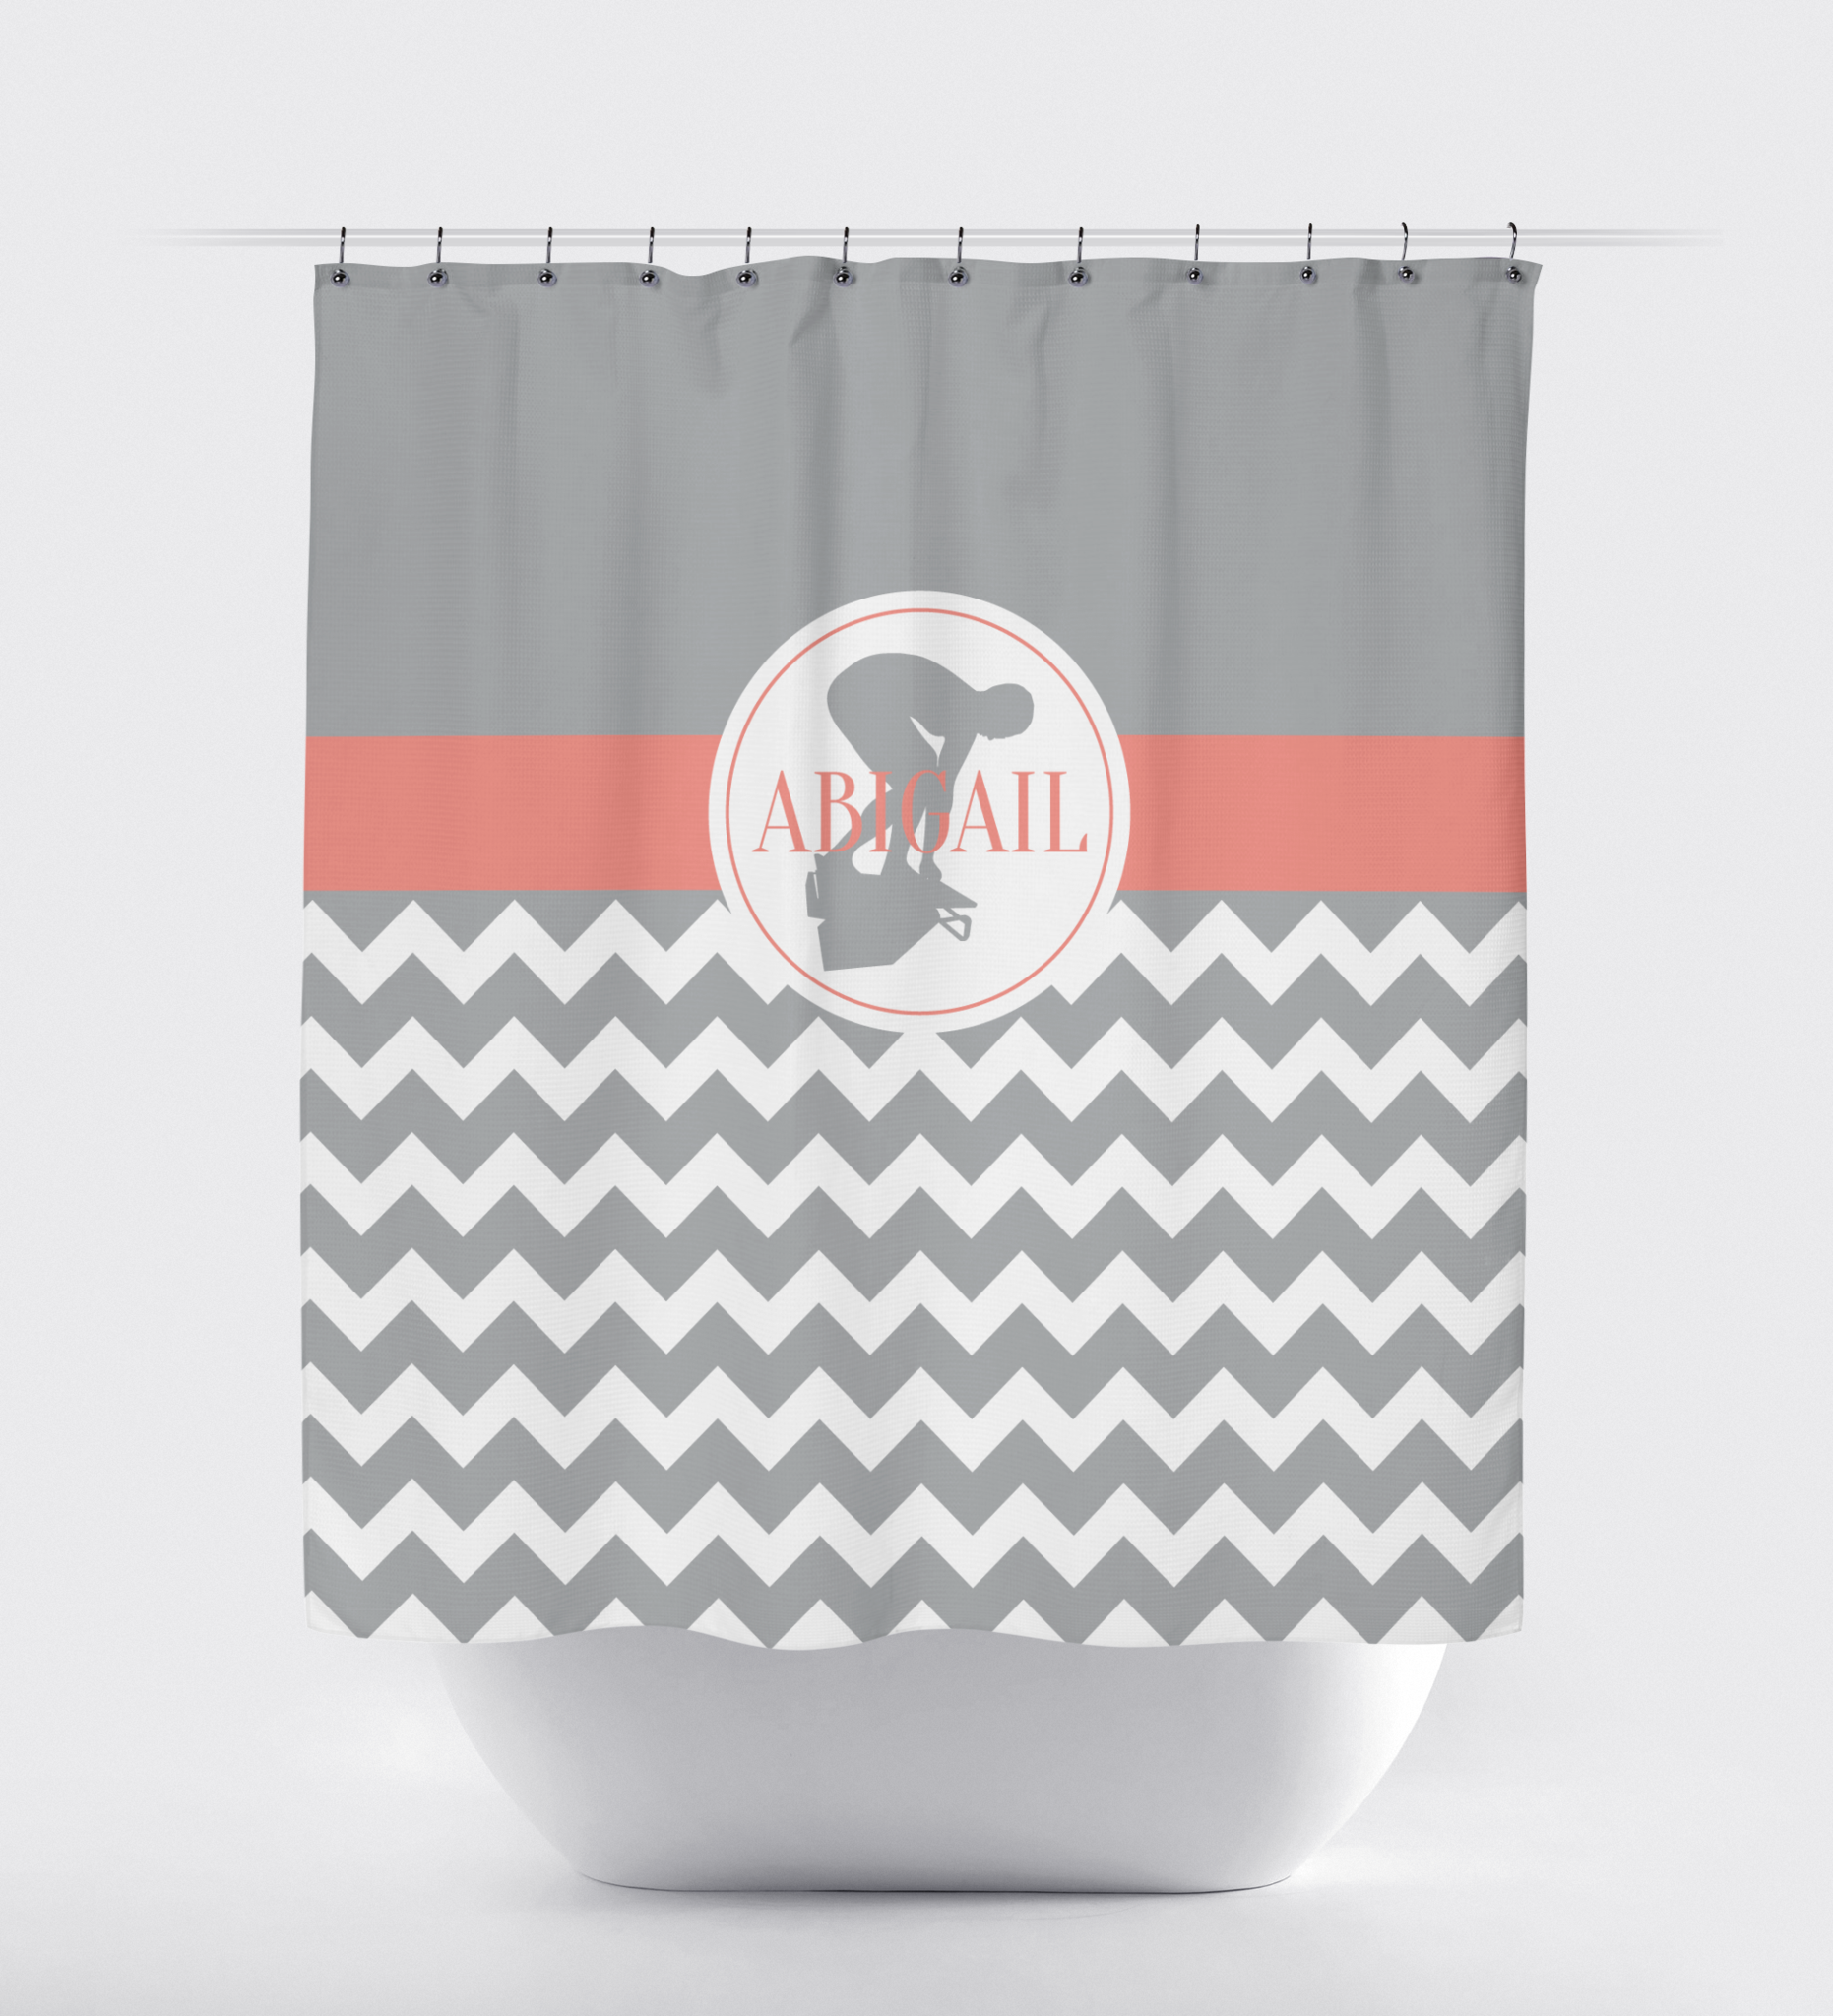 Emejing White And Coral Shower Curtain Contemporary - Best image ...